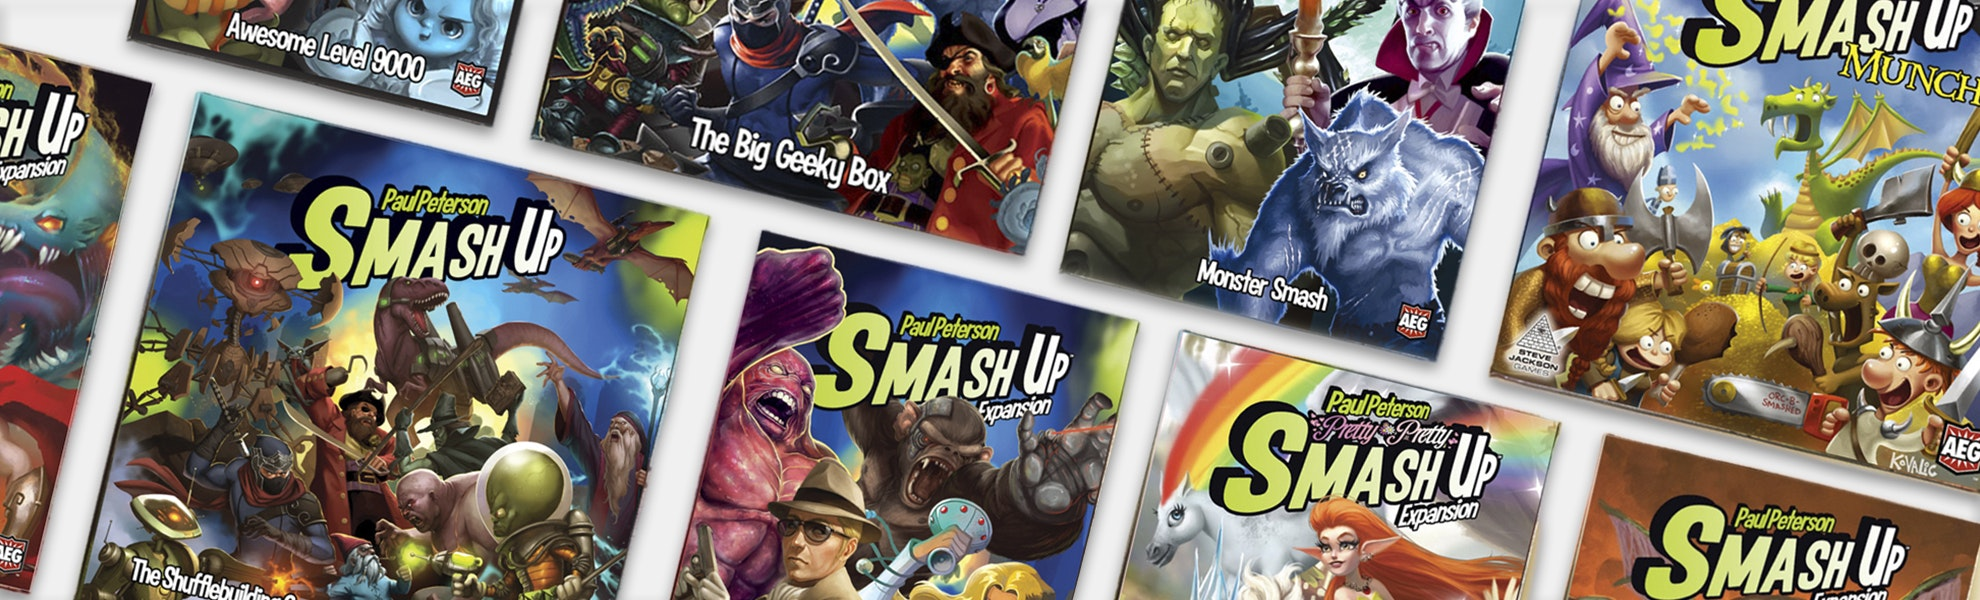 Smash Up: The Complete Collection